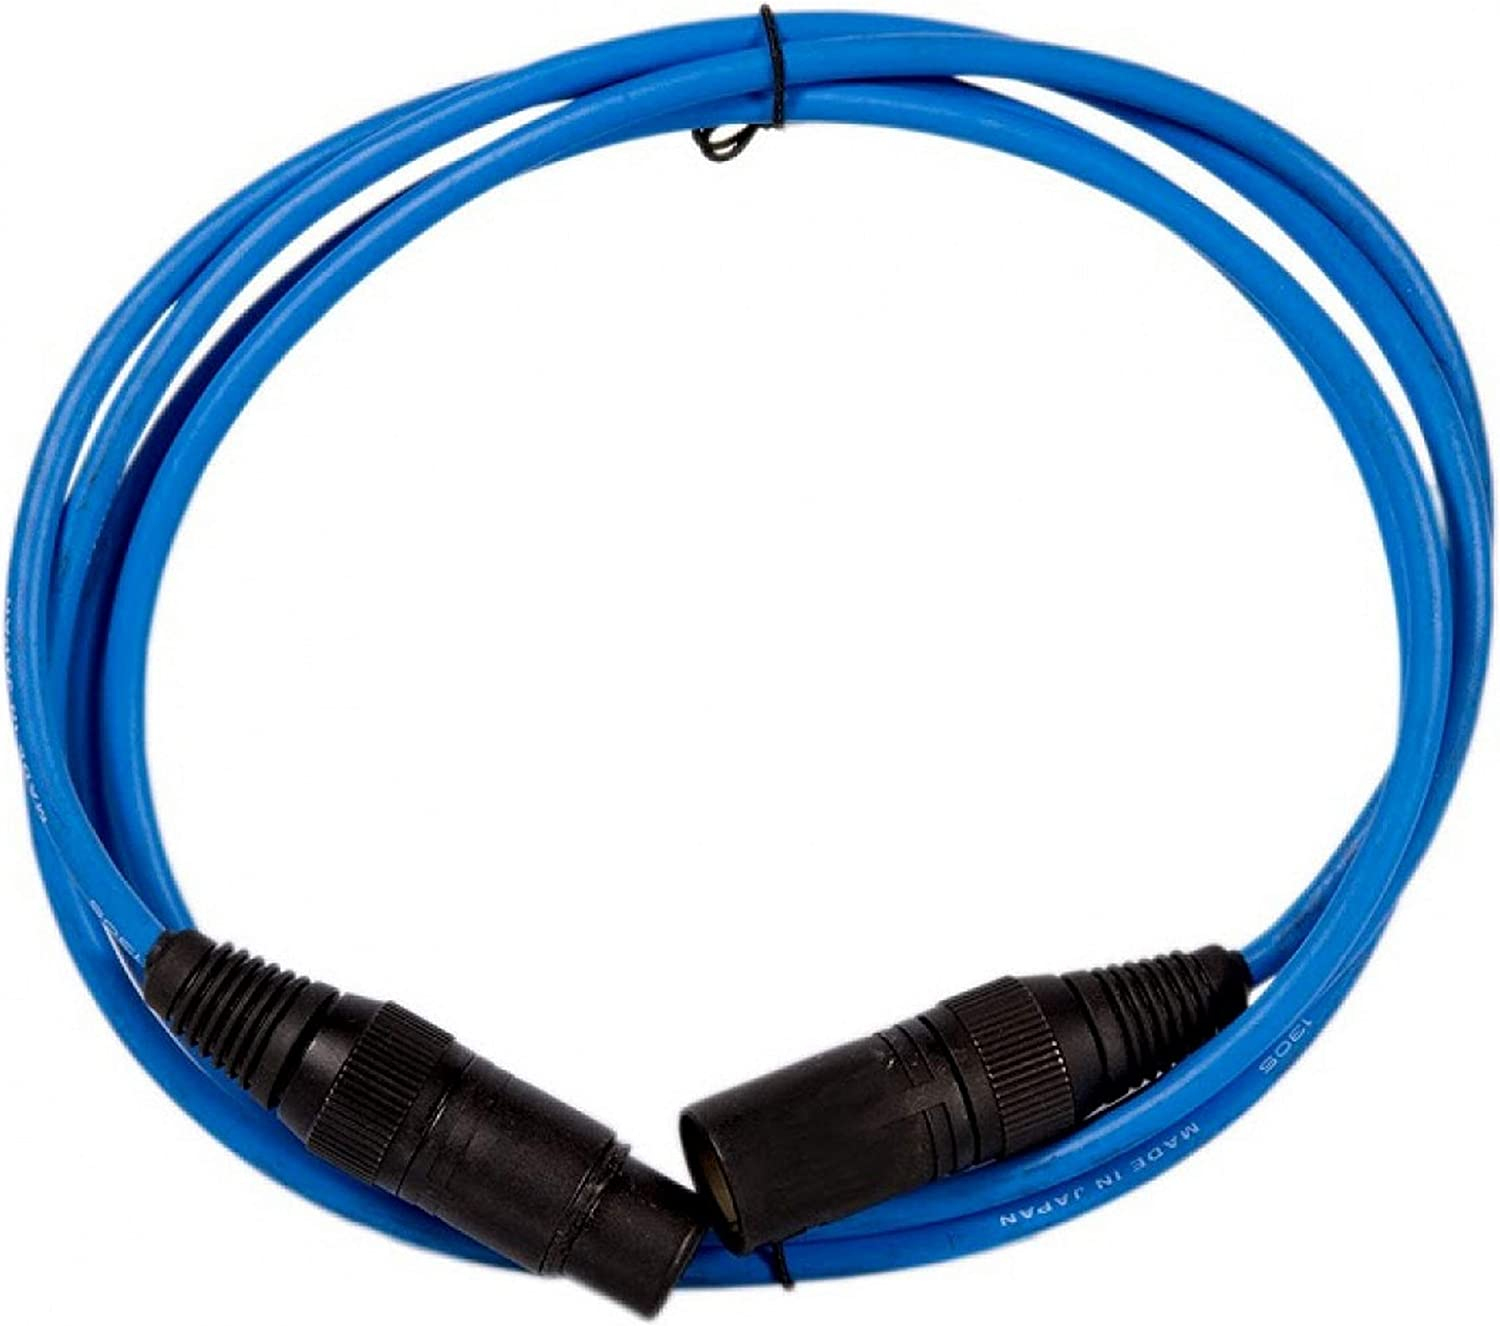 Popularity Line 6 L6 Link ft Special Campaign Cable